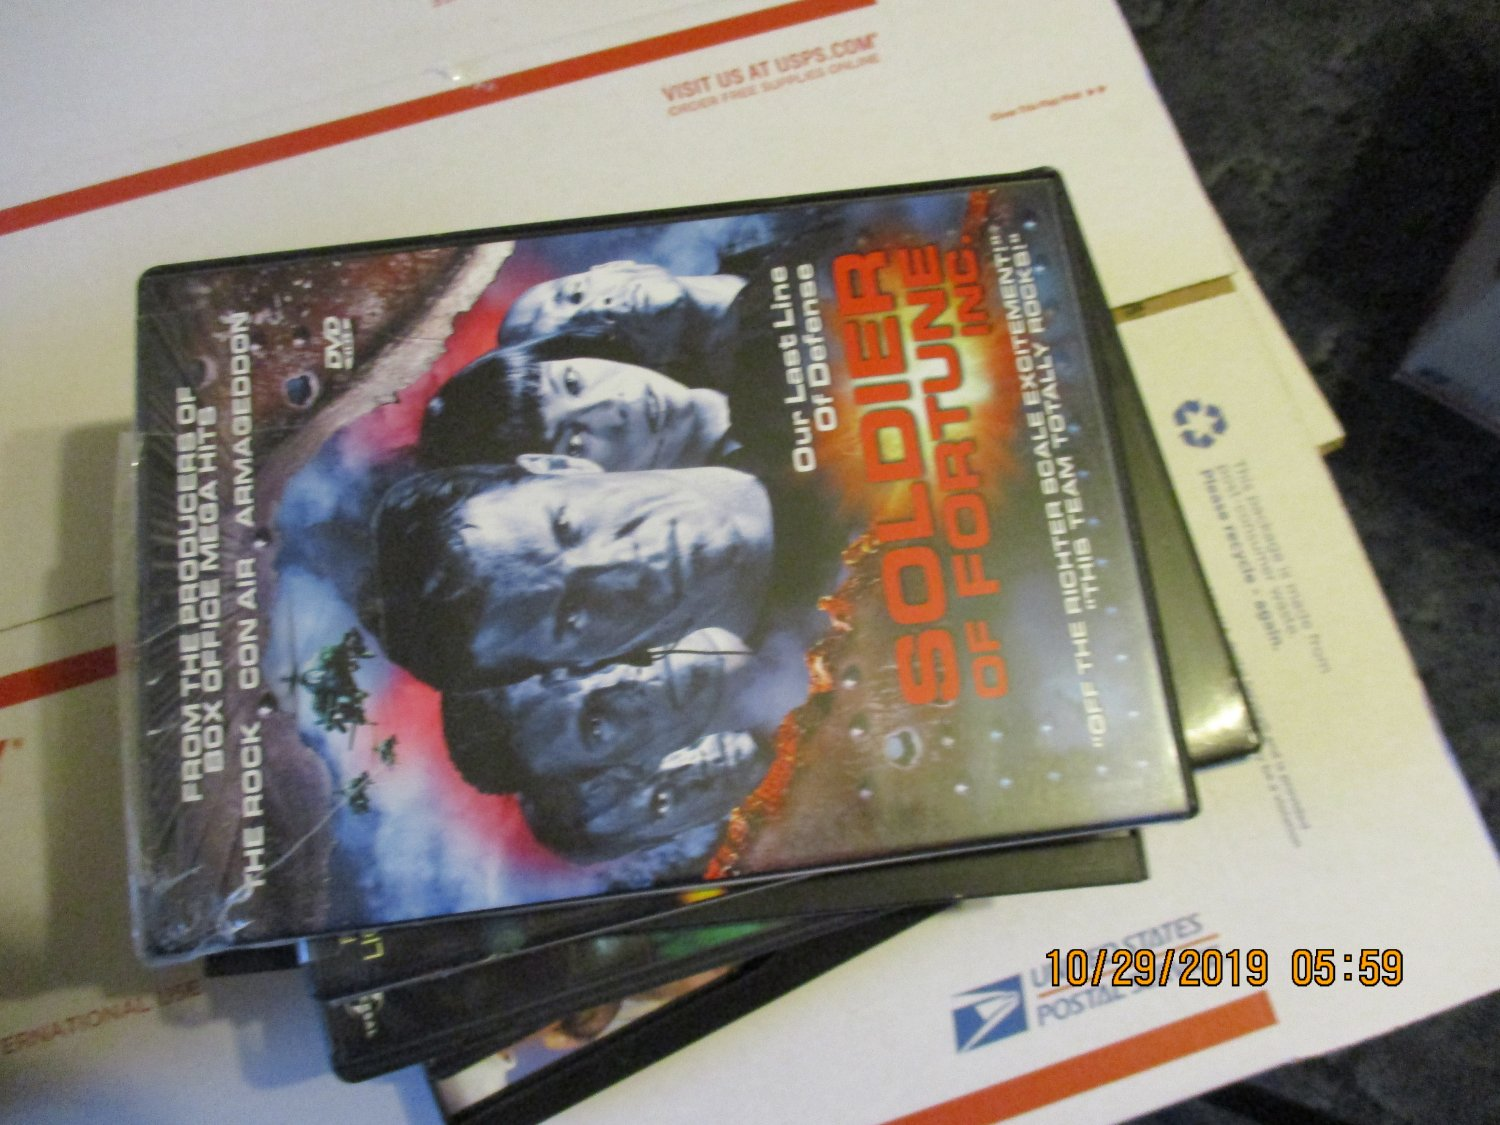 Soldier of Fortune Inc. dvd